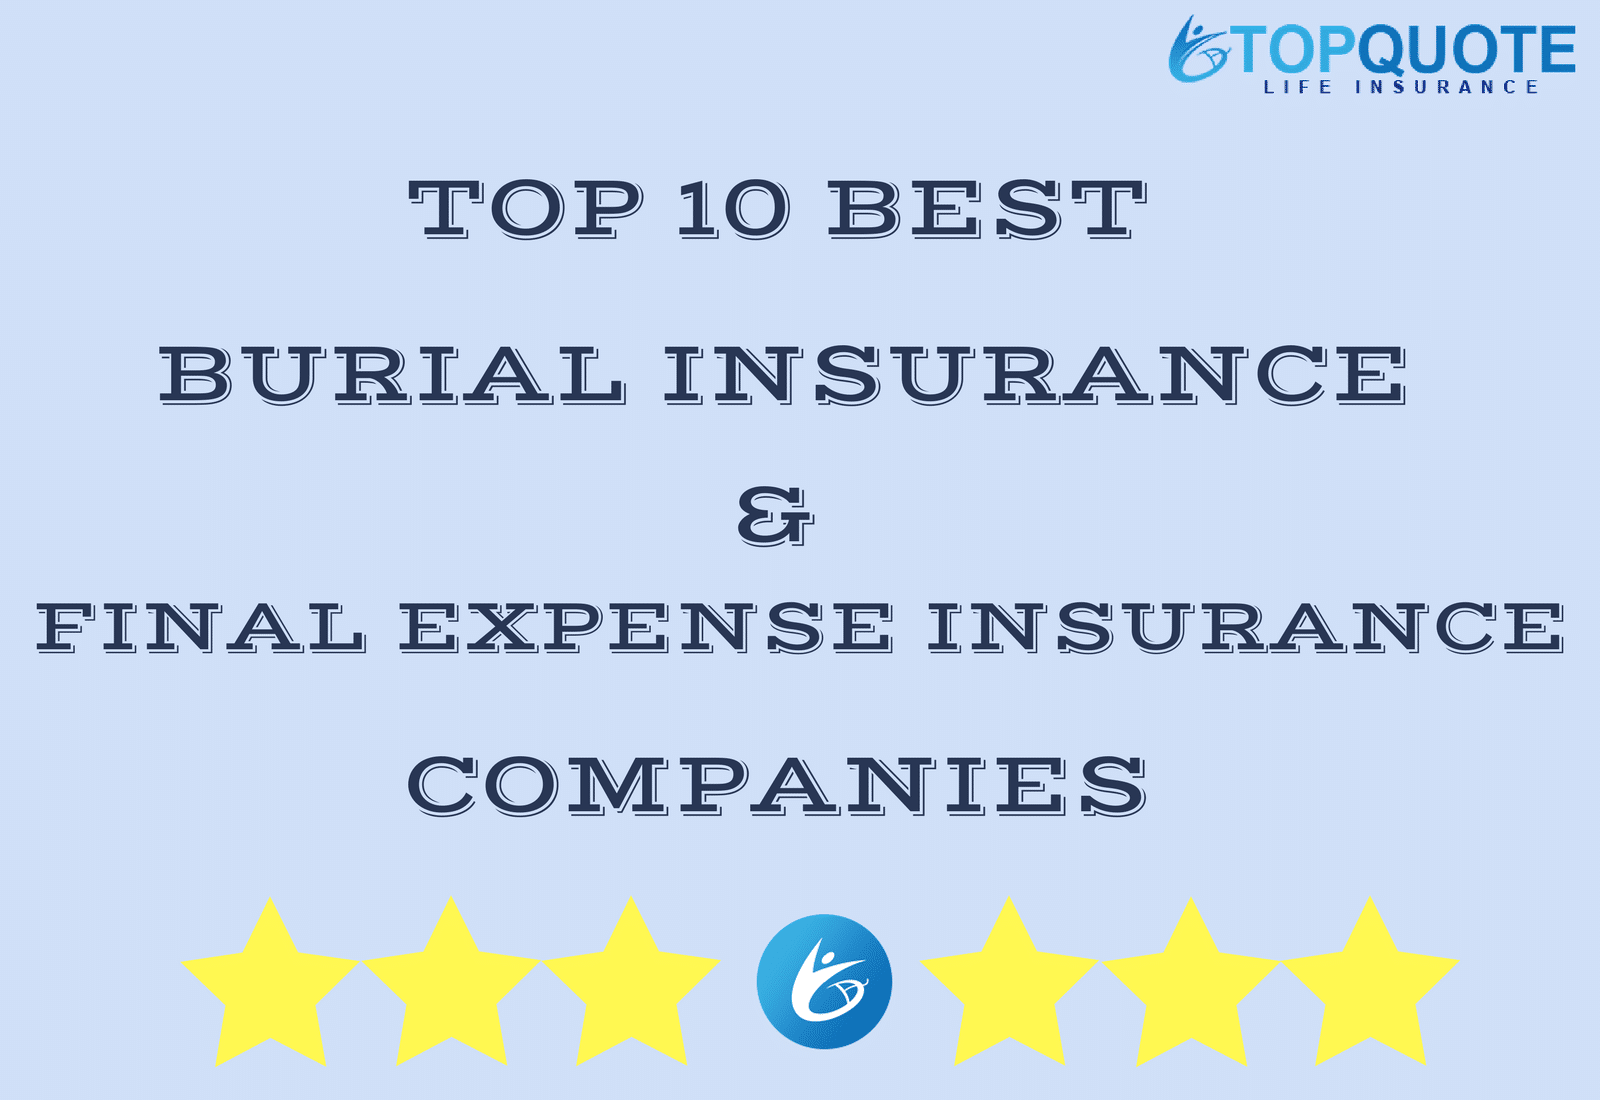 Final Expense Life Insurance Quotes 2018 Top 10 Best Burial Insurance & Final Expense Insurance Companies